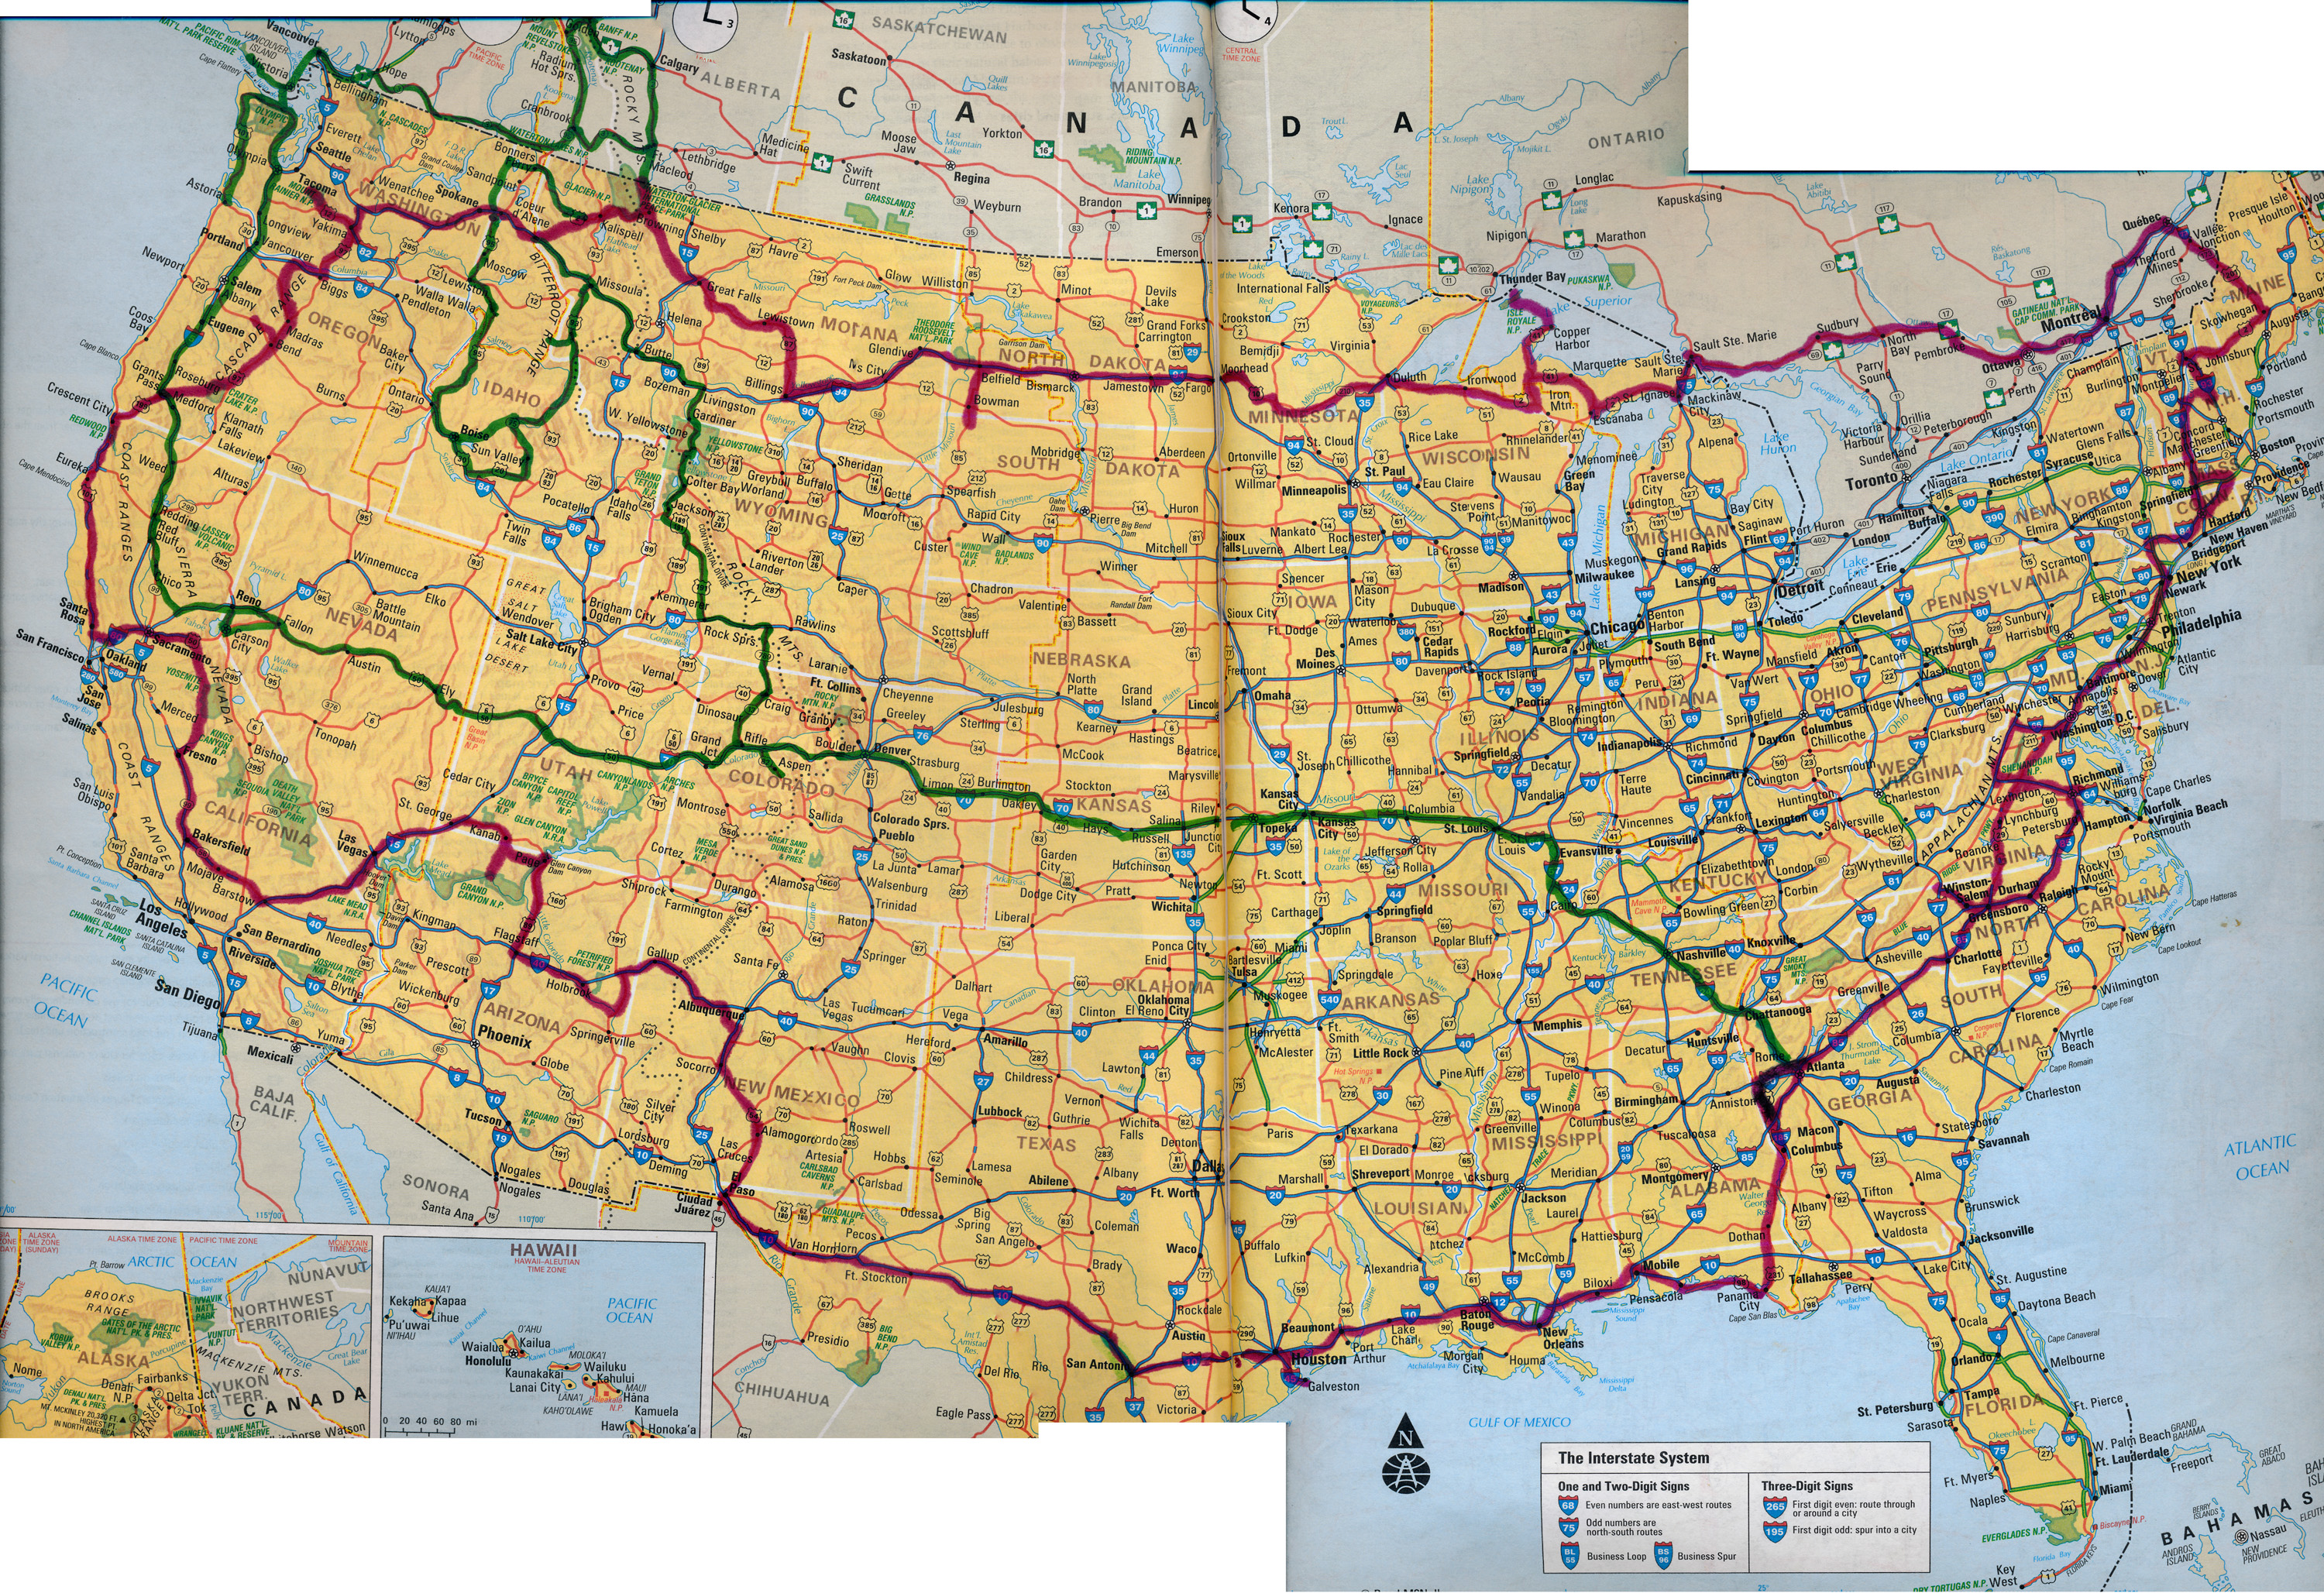 wisconsin road map usa with Cross Country Road Trip 1996 on China State Digital Map Green as well ATVs Textron Off Road Alterra VLX 700 EPS 2018 Kaukauna WI 73e96ec5 6d0a 4daa A7ba A7ae012353e0 together with Potosi Wisconsin Street Map 5564625 moreover Superior Wisconsin besides Where Is Ll.